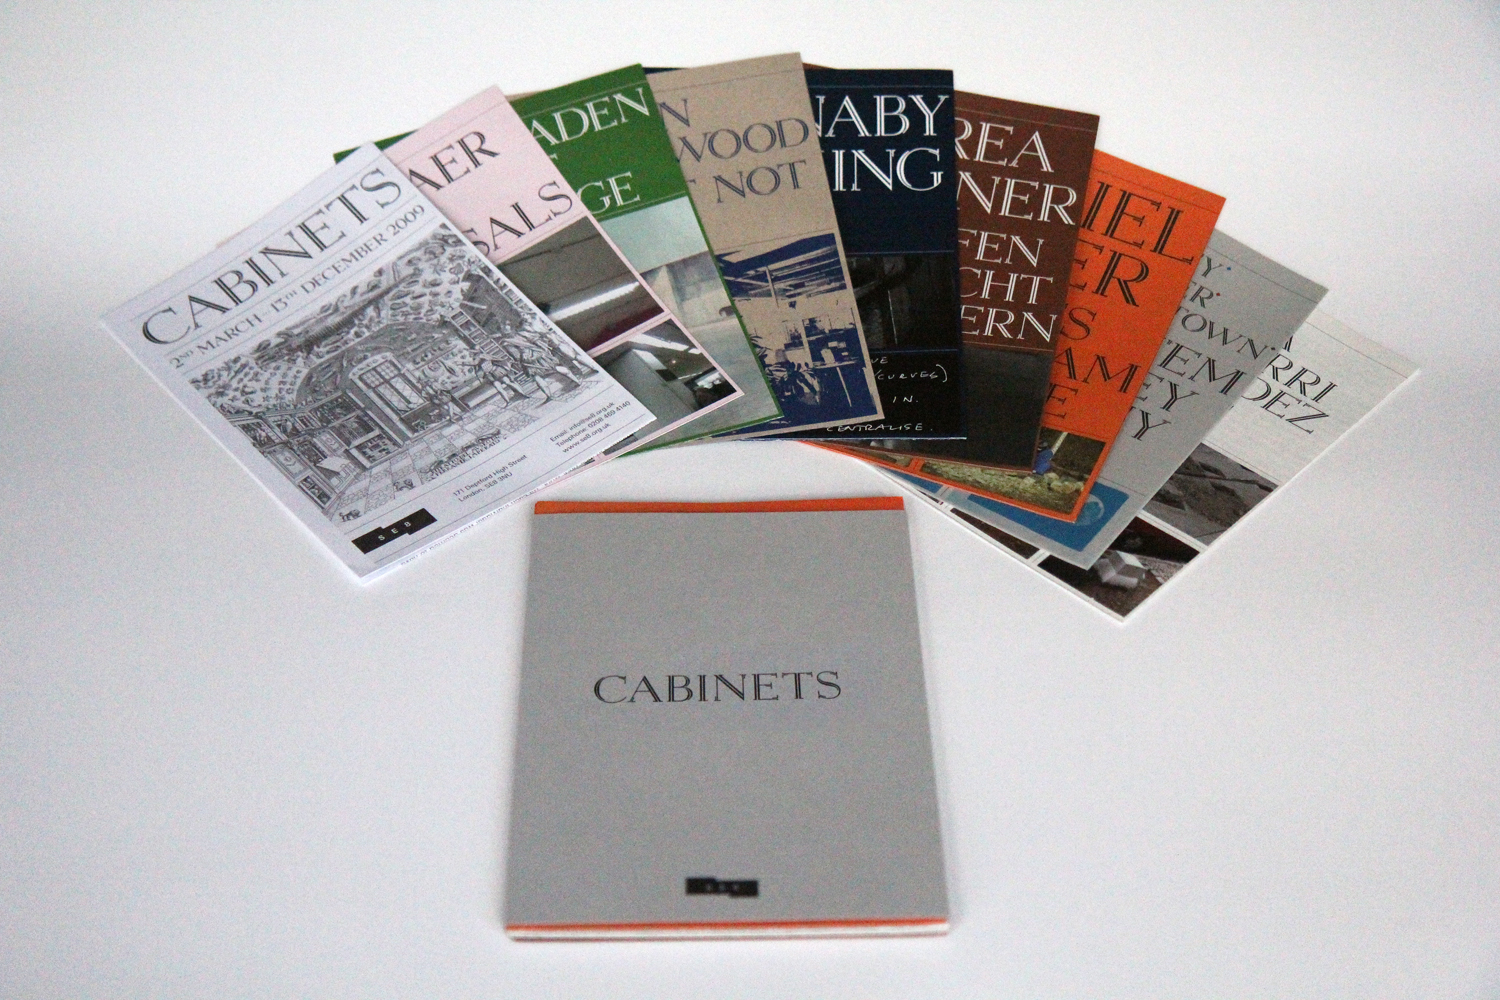 Cabinets - Printed matter - 9 pamphlets with outer cover - limited edition 150